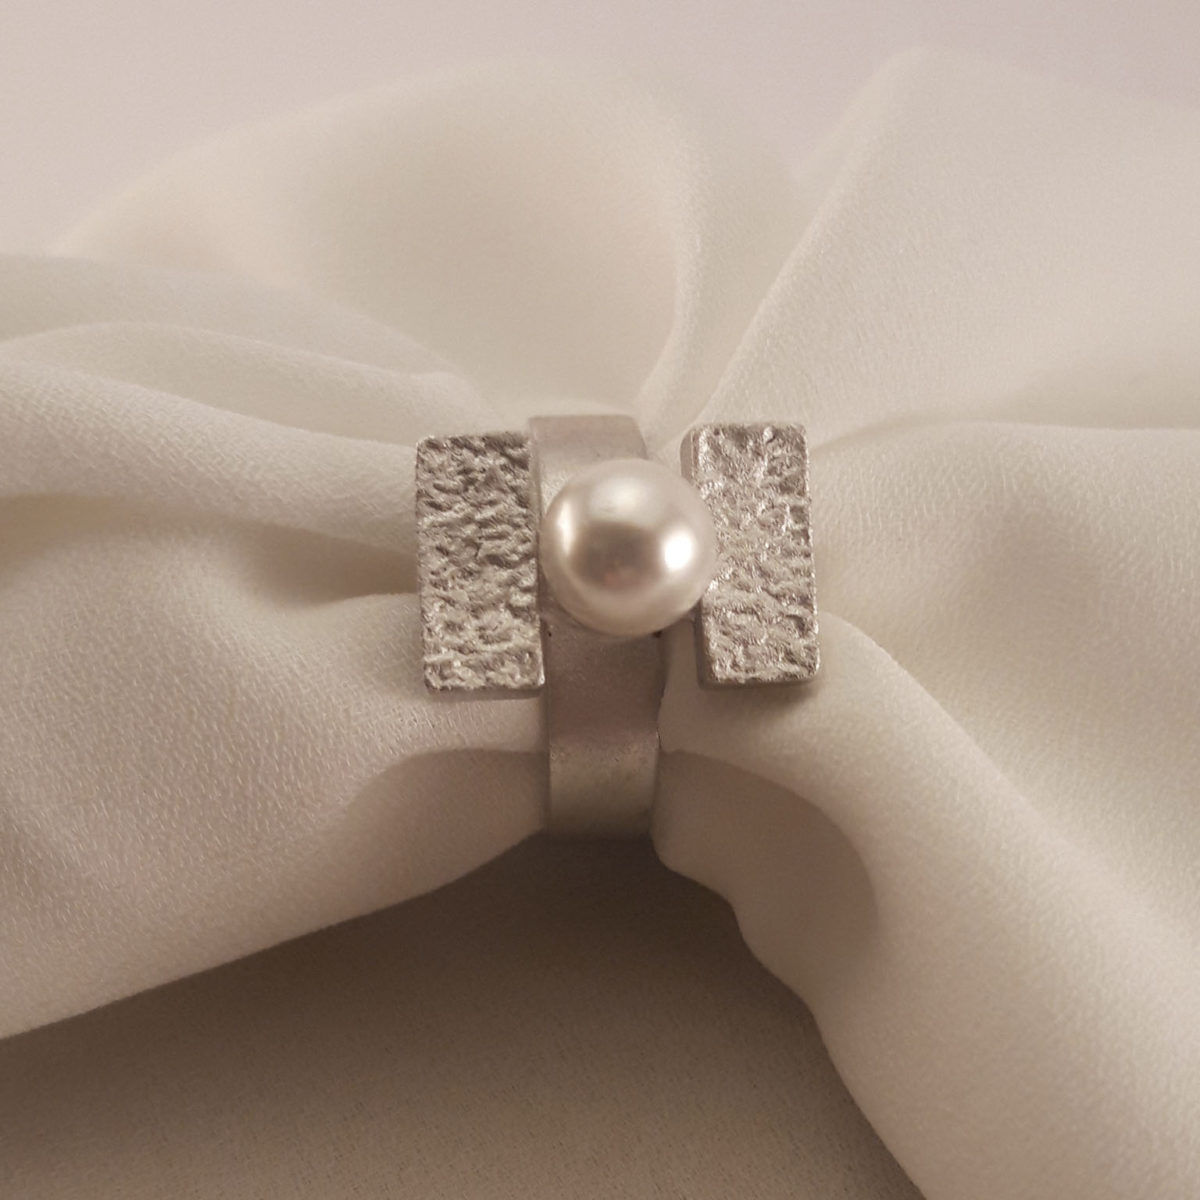 Matte Silver Rectangular Ring With Small White Pearl